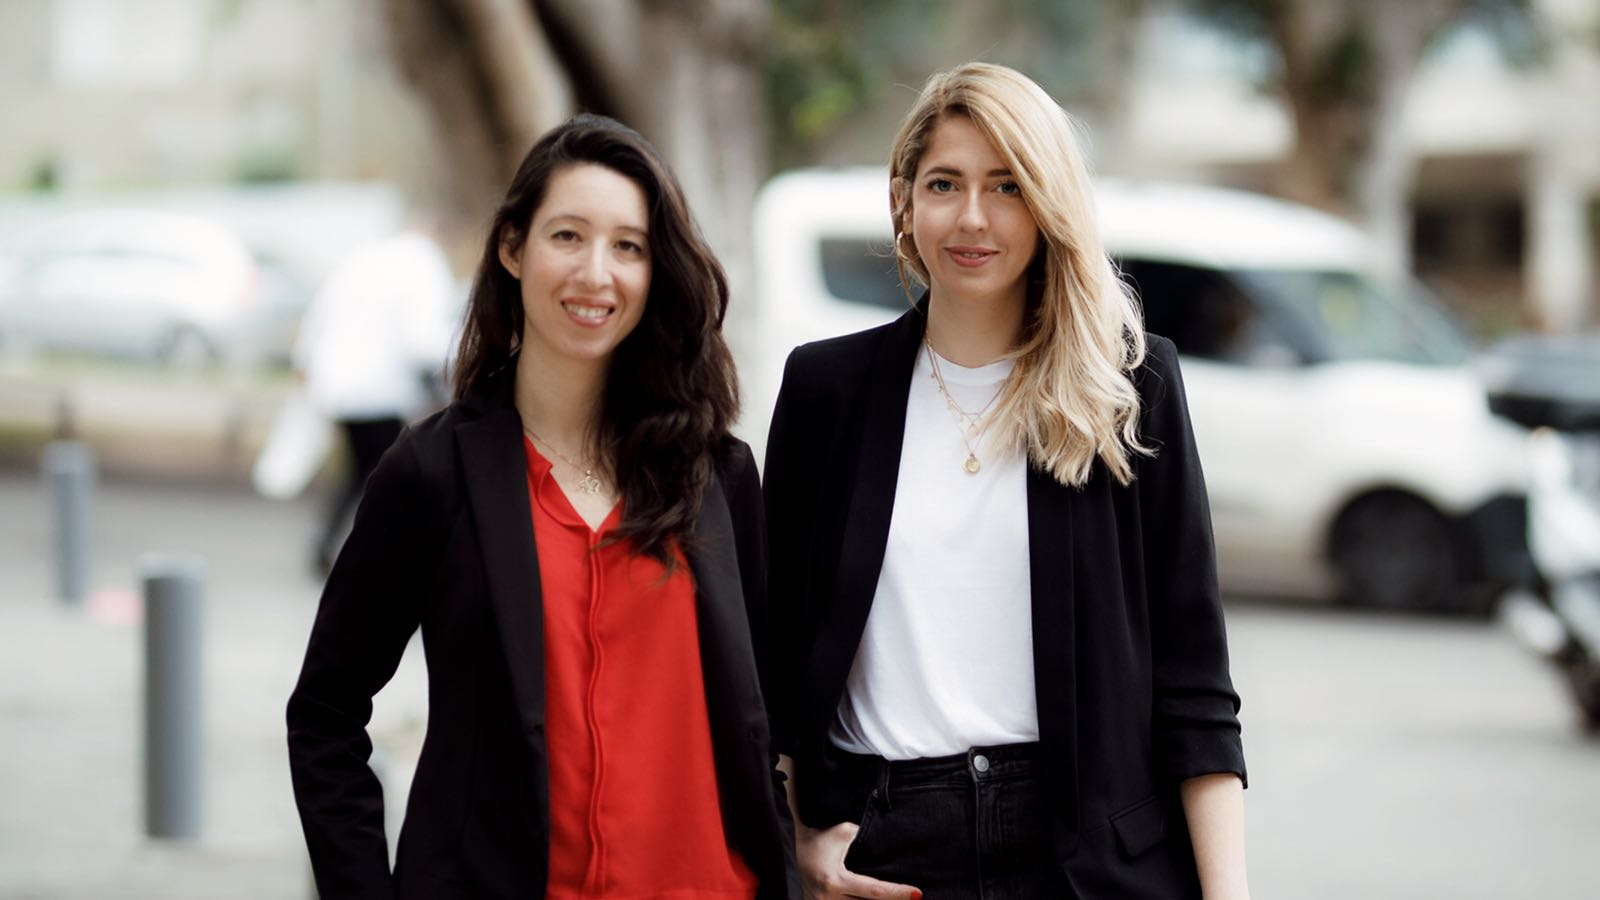 Yael Kochman (left) and Alla Foht (right) are the founders of Re: Tech, an innovation center in Tel Aviv for retail technology. Courtesy